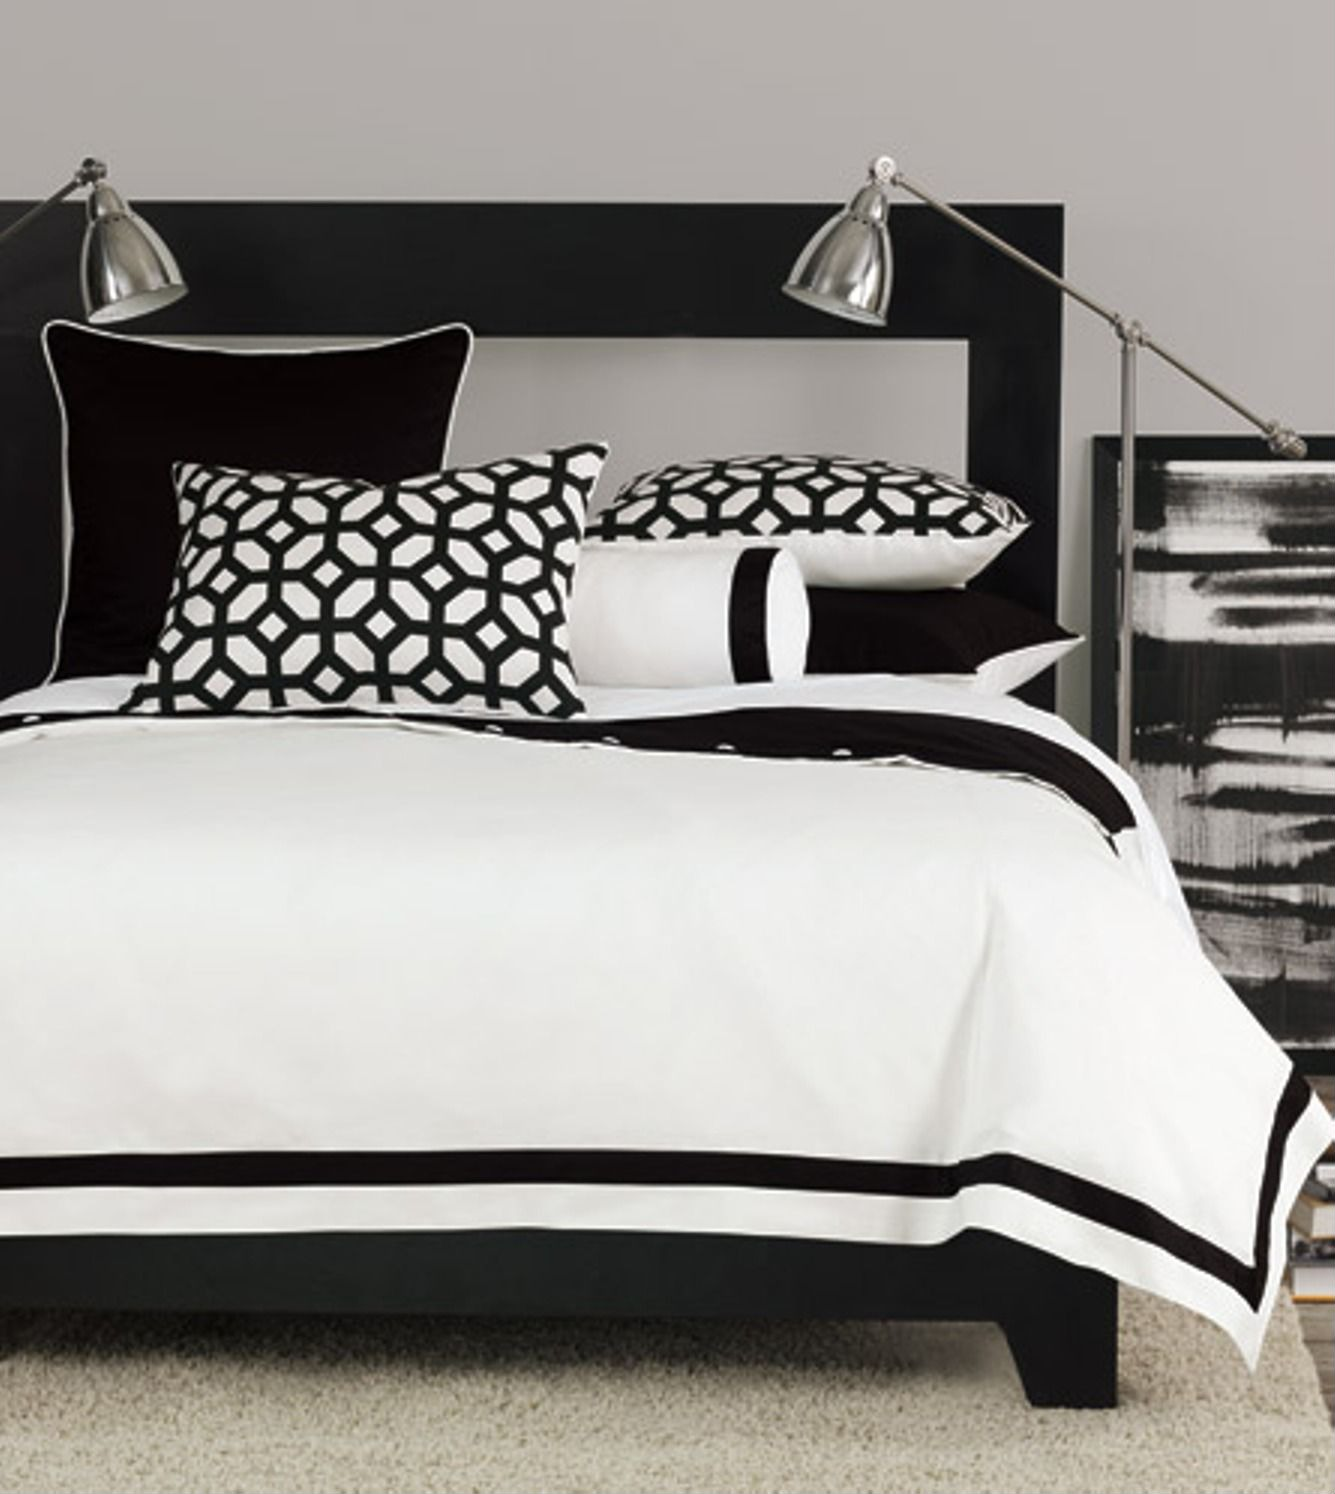 Bed sheets designs white - Black And White Bedroom 2